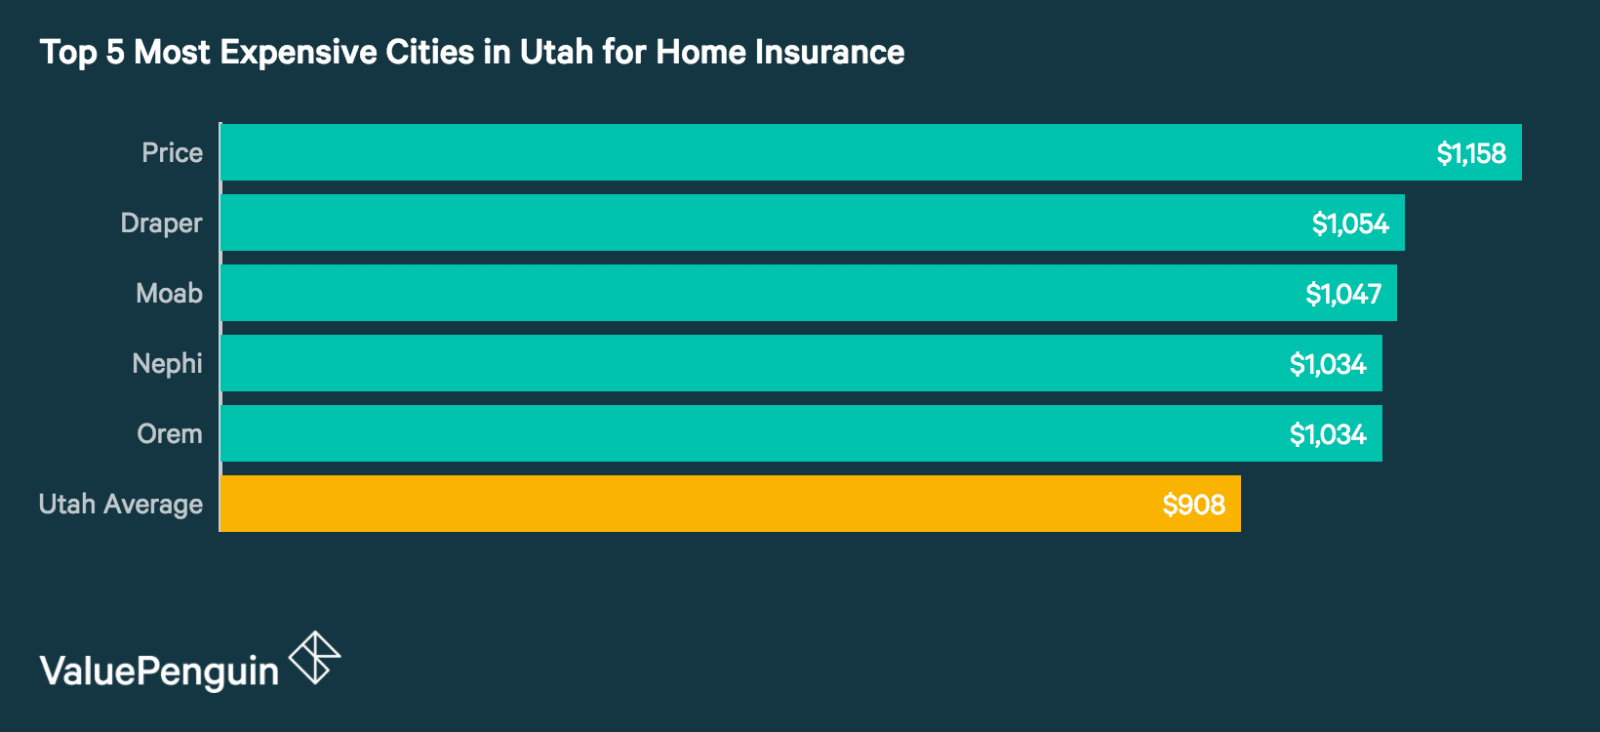 Top 5 Most Expensive Cities in Utah for Homeowners Insurance